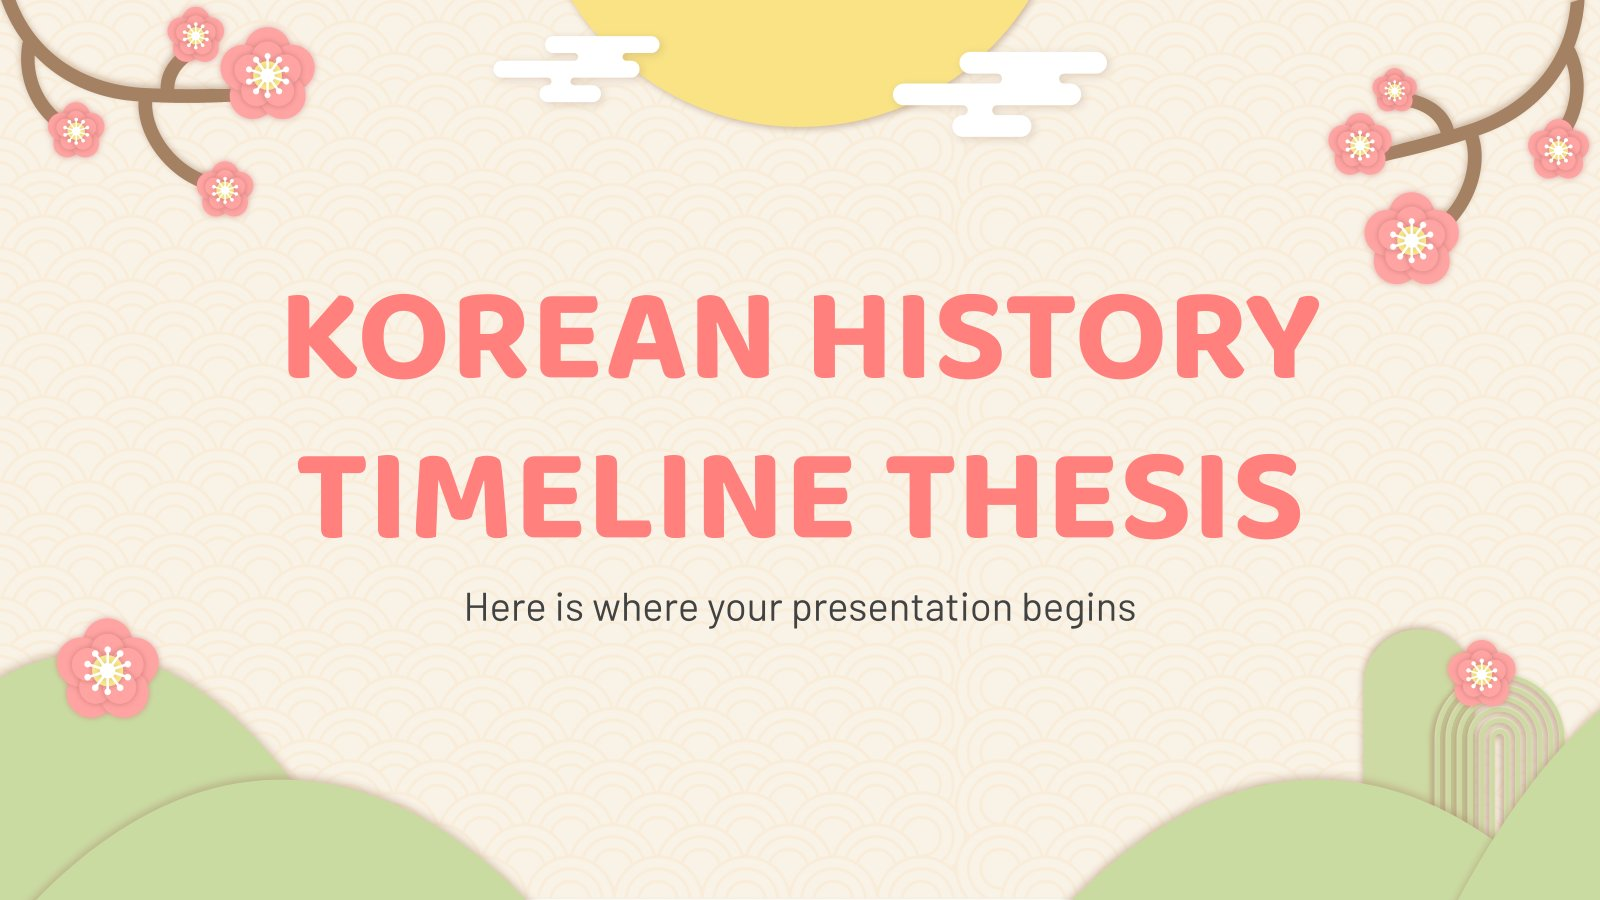 Korean History Timeline Thesis presentation template